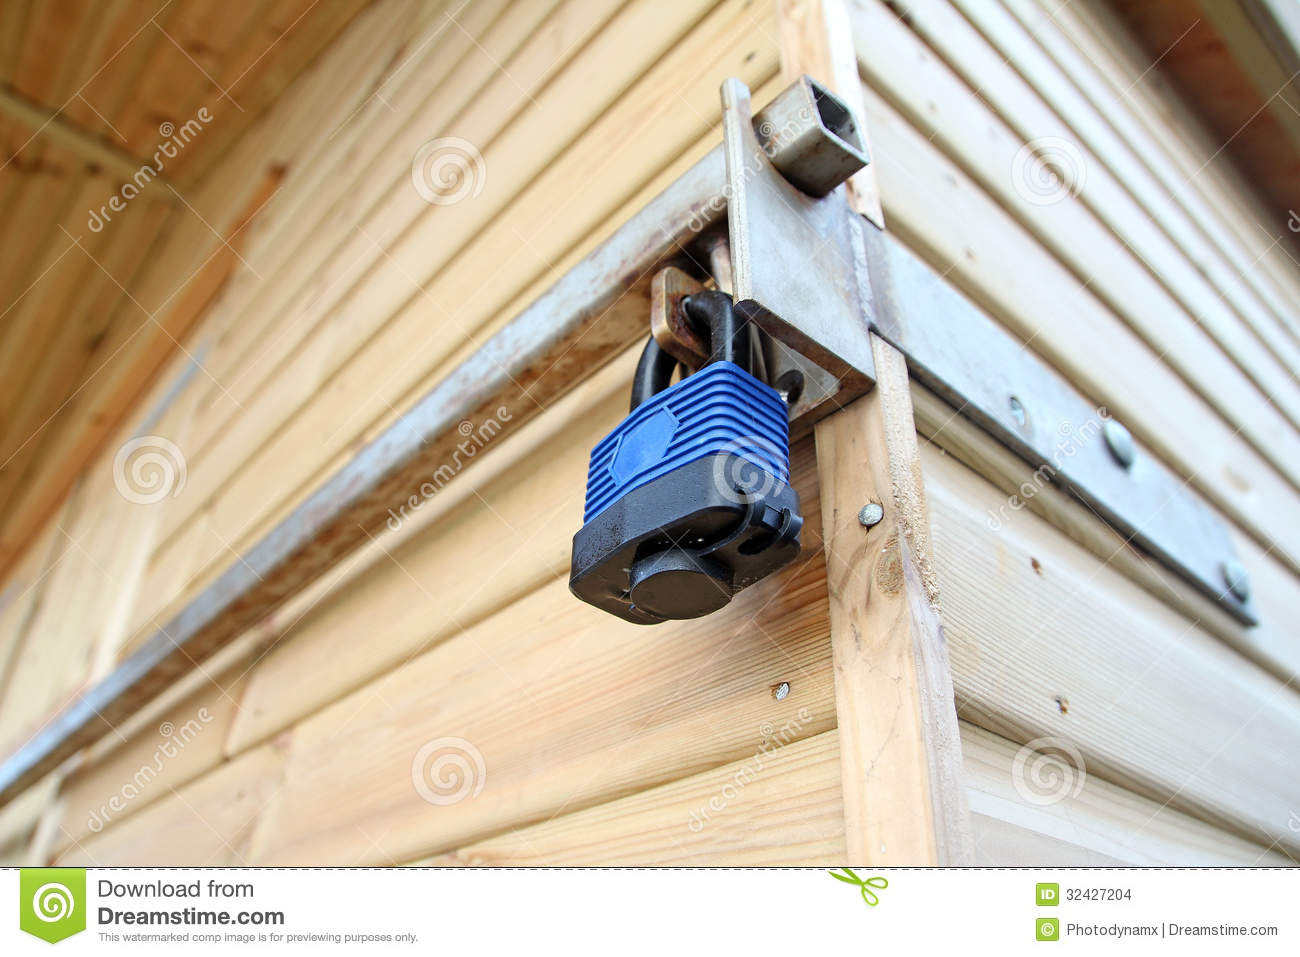 Photo of a security lock and bar attached to a beach hut.